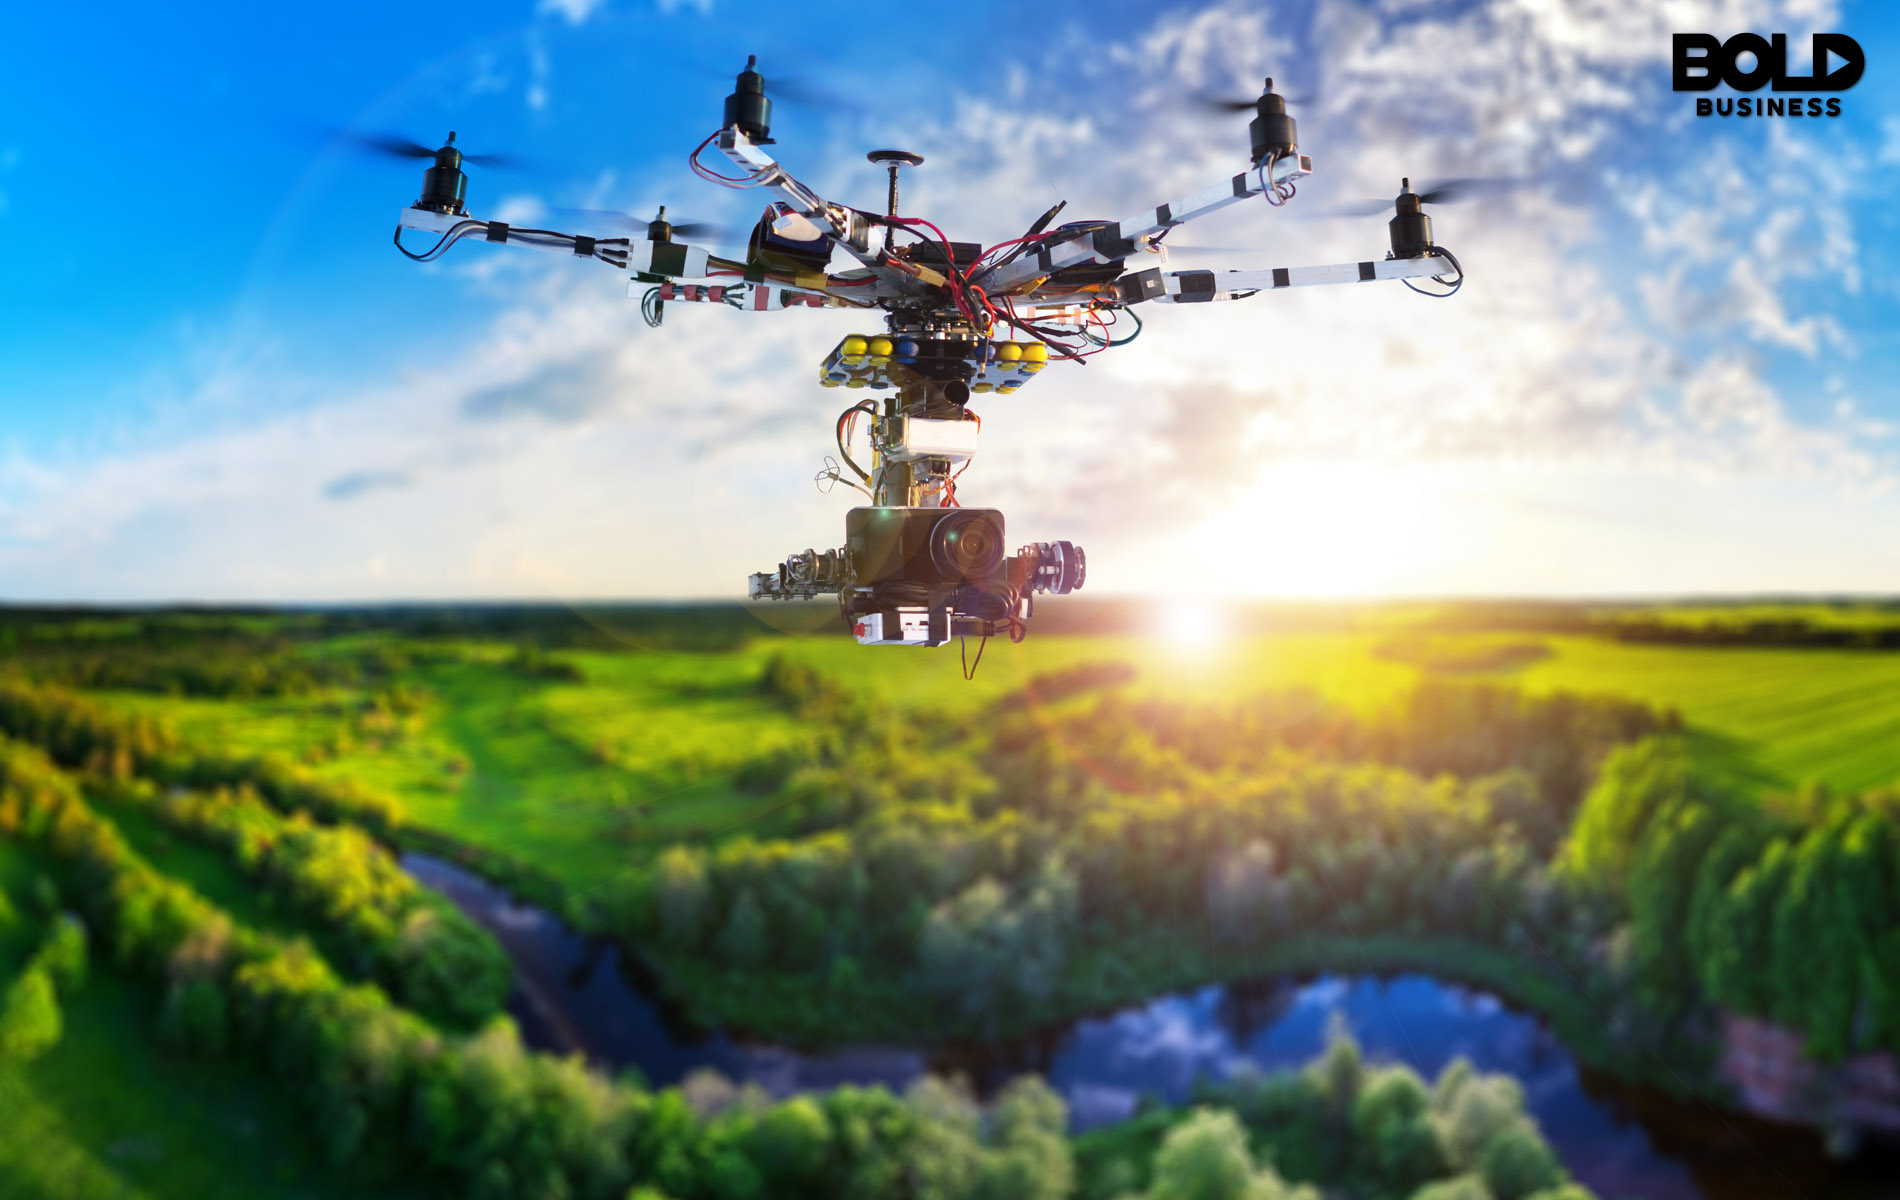 Tree Planting Drones Might Rescue the Planet – Bold Business